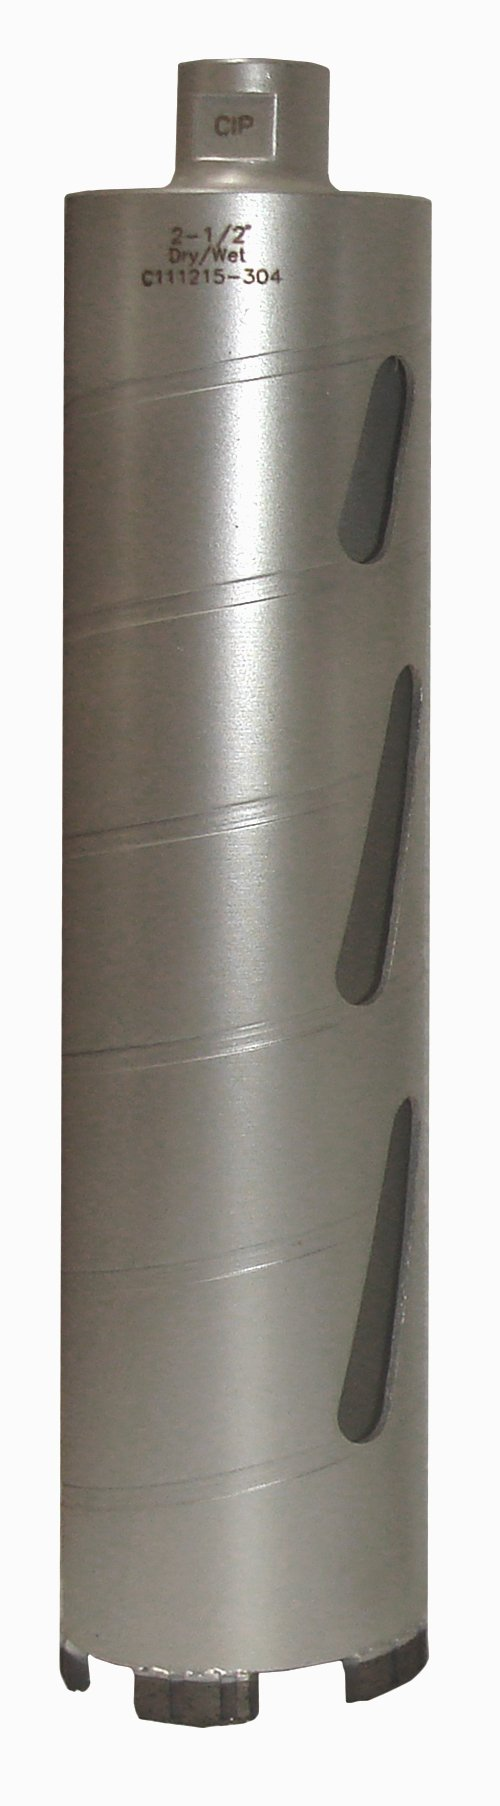 Concord Blades CBD02500HP 2-1/2 Inch Laser Welded Dry/Wet Diamond Core Drill Bit by Concord Blades